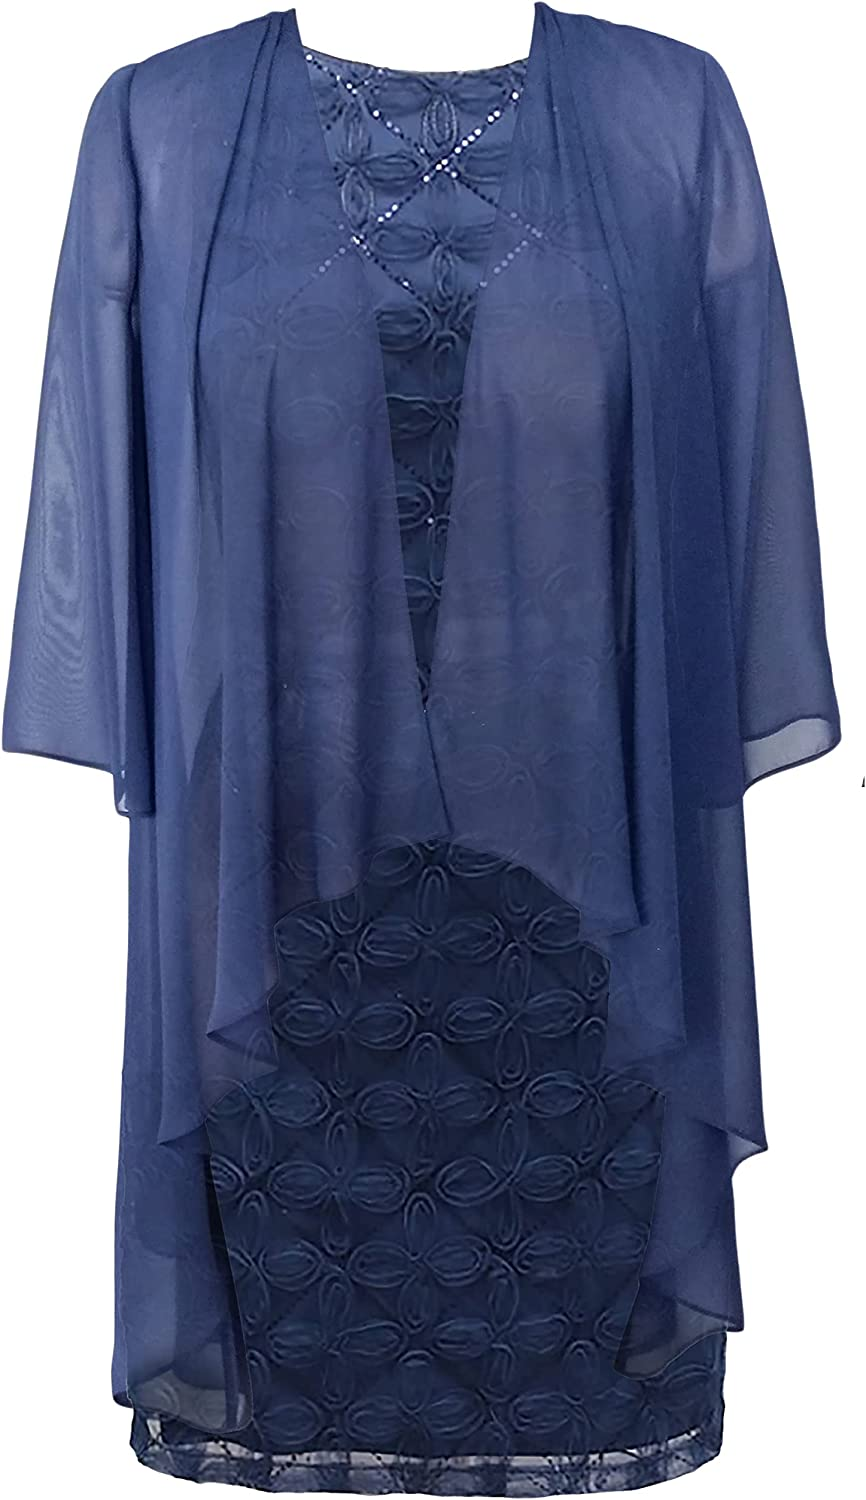 S.L. Fashions Women's Chiffon Tier Jacket Dress with Bead Neck-Close Out